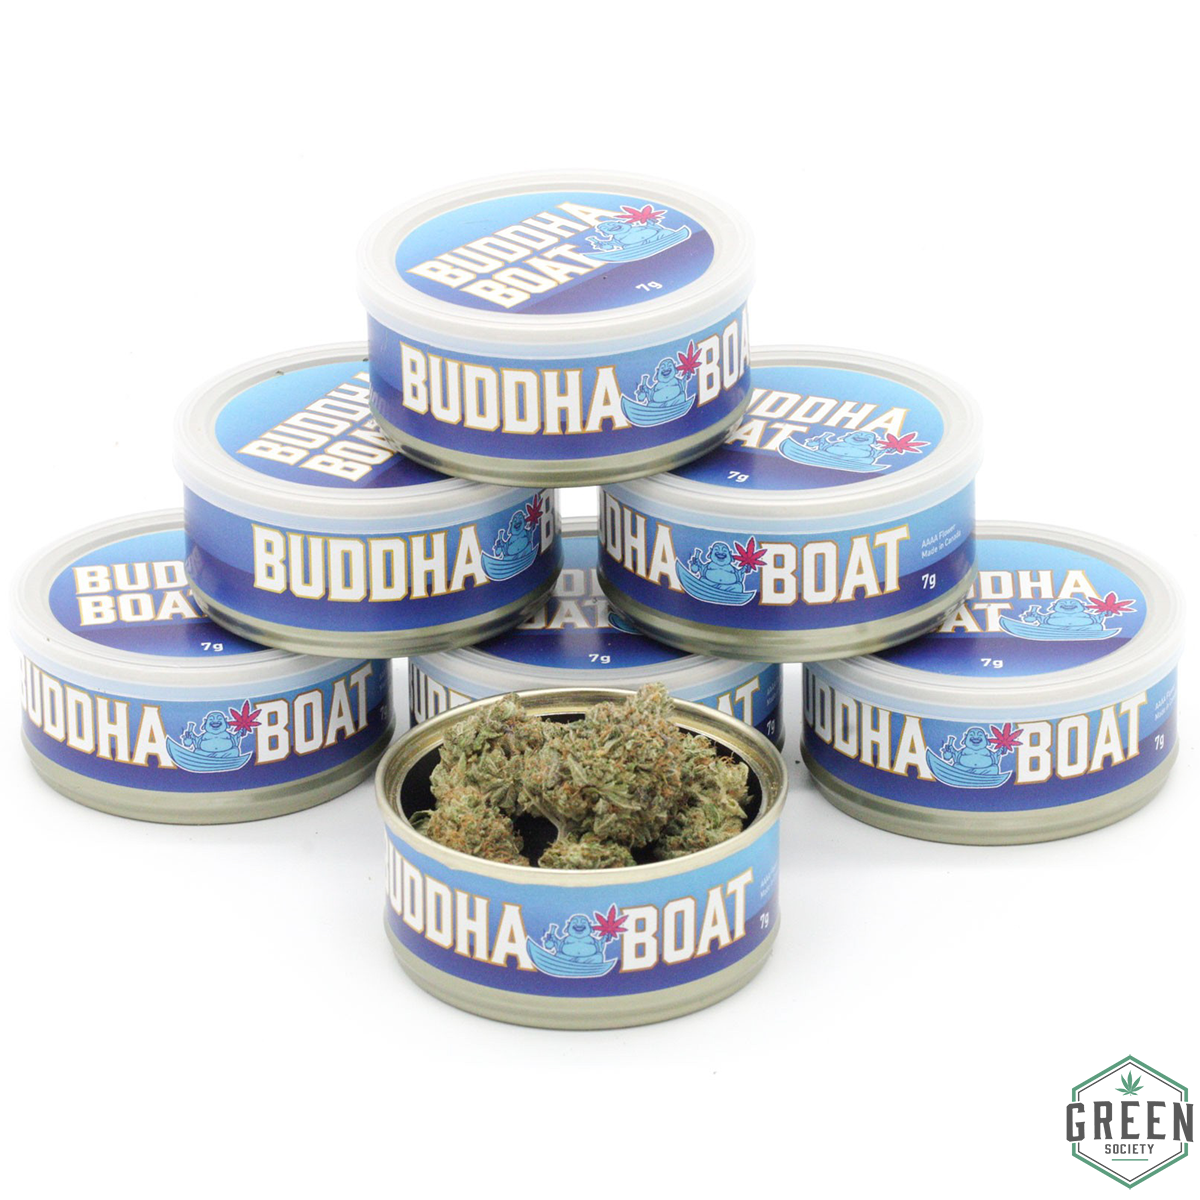 Black Tuna by Buddha Boat by Green Society - Image © 2018 Green Society. All Rights Reserved.